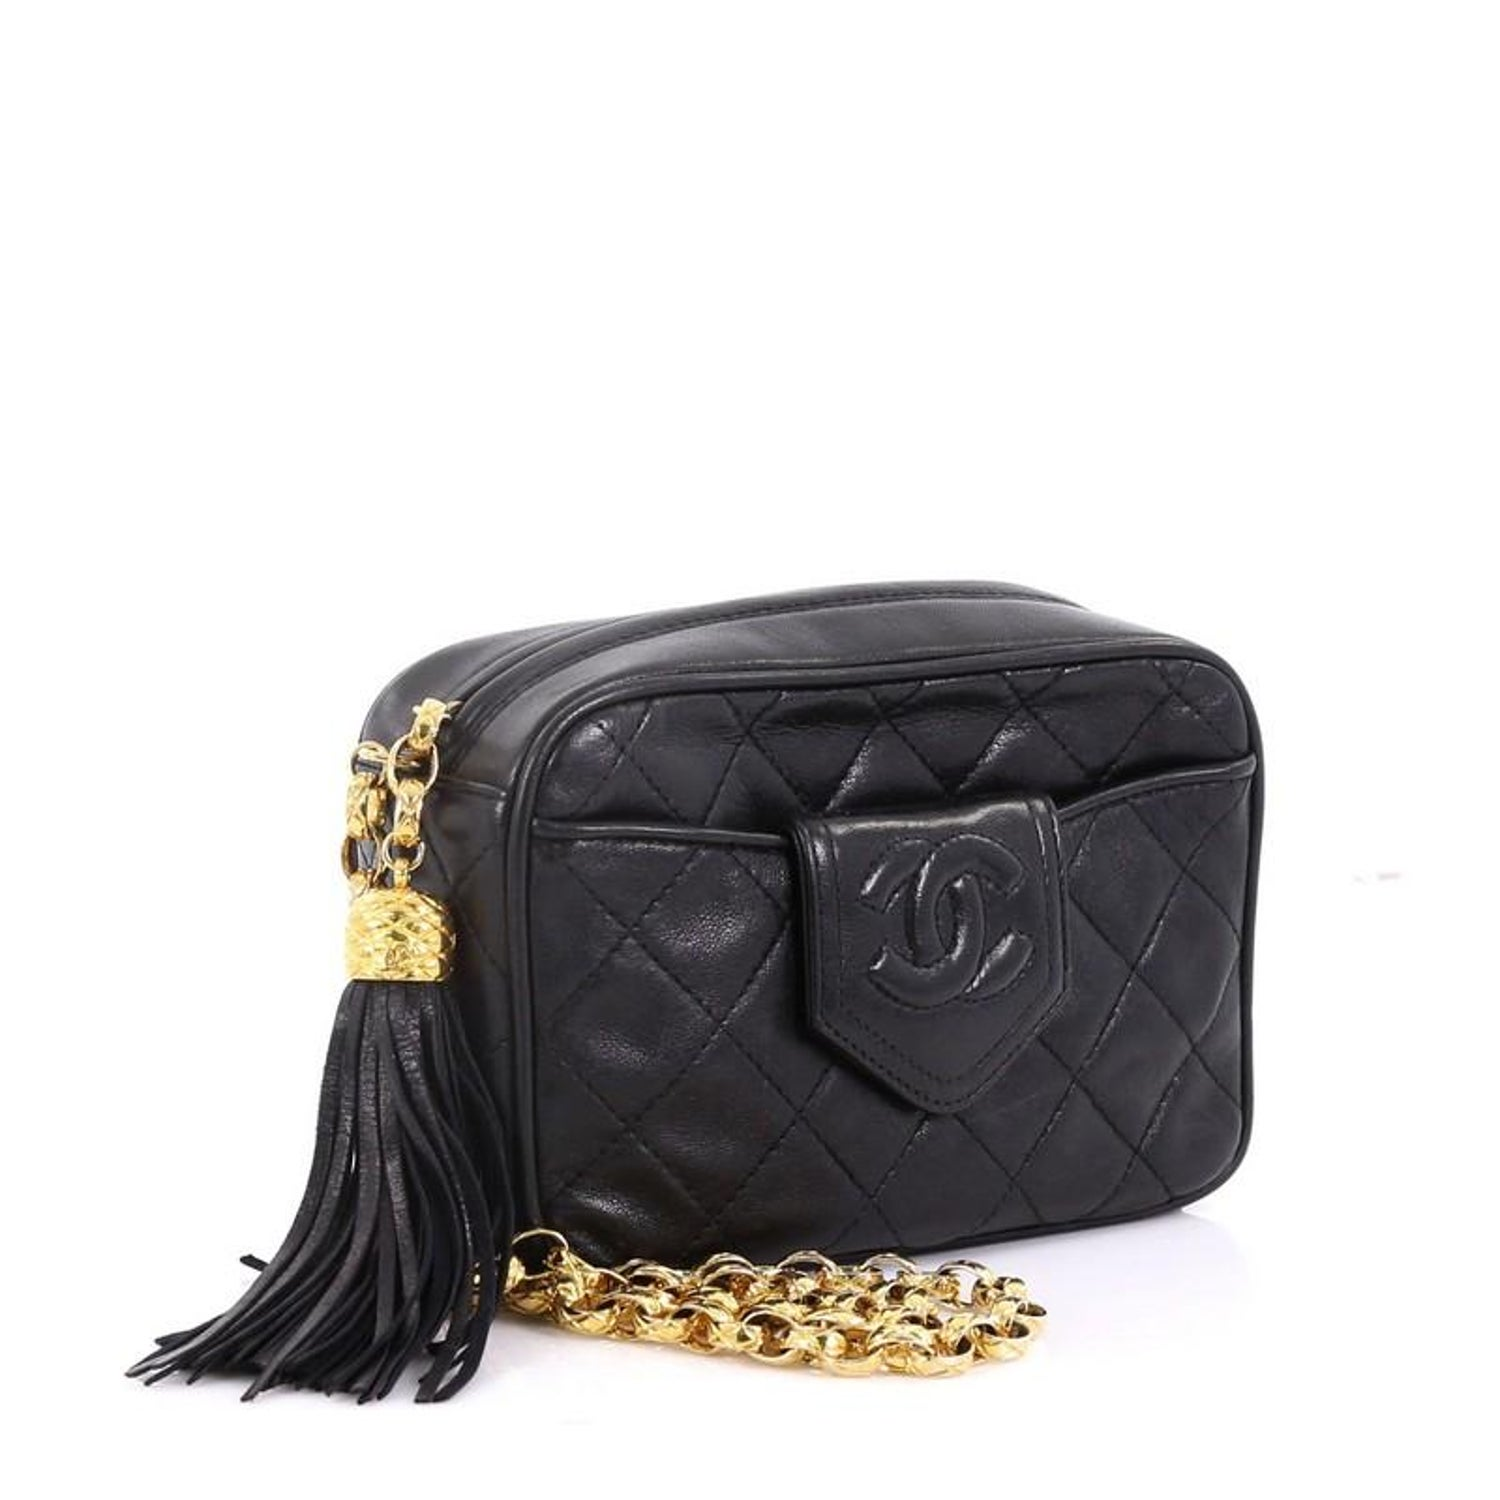 0f722fff2ff6 Chanel Vintage Camera Tassel Bag Quilted Leather Mini at 1stdibs